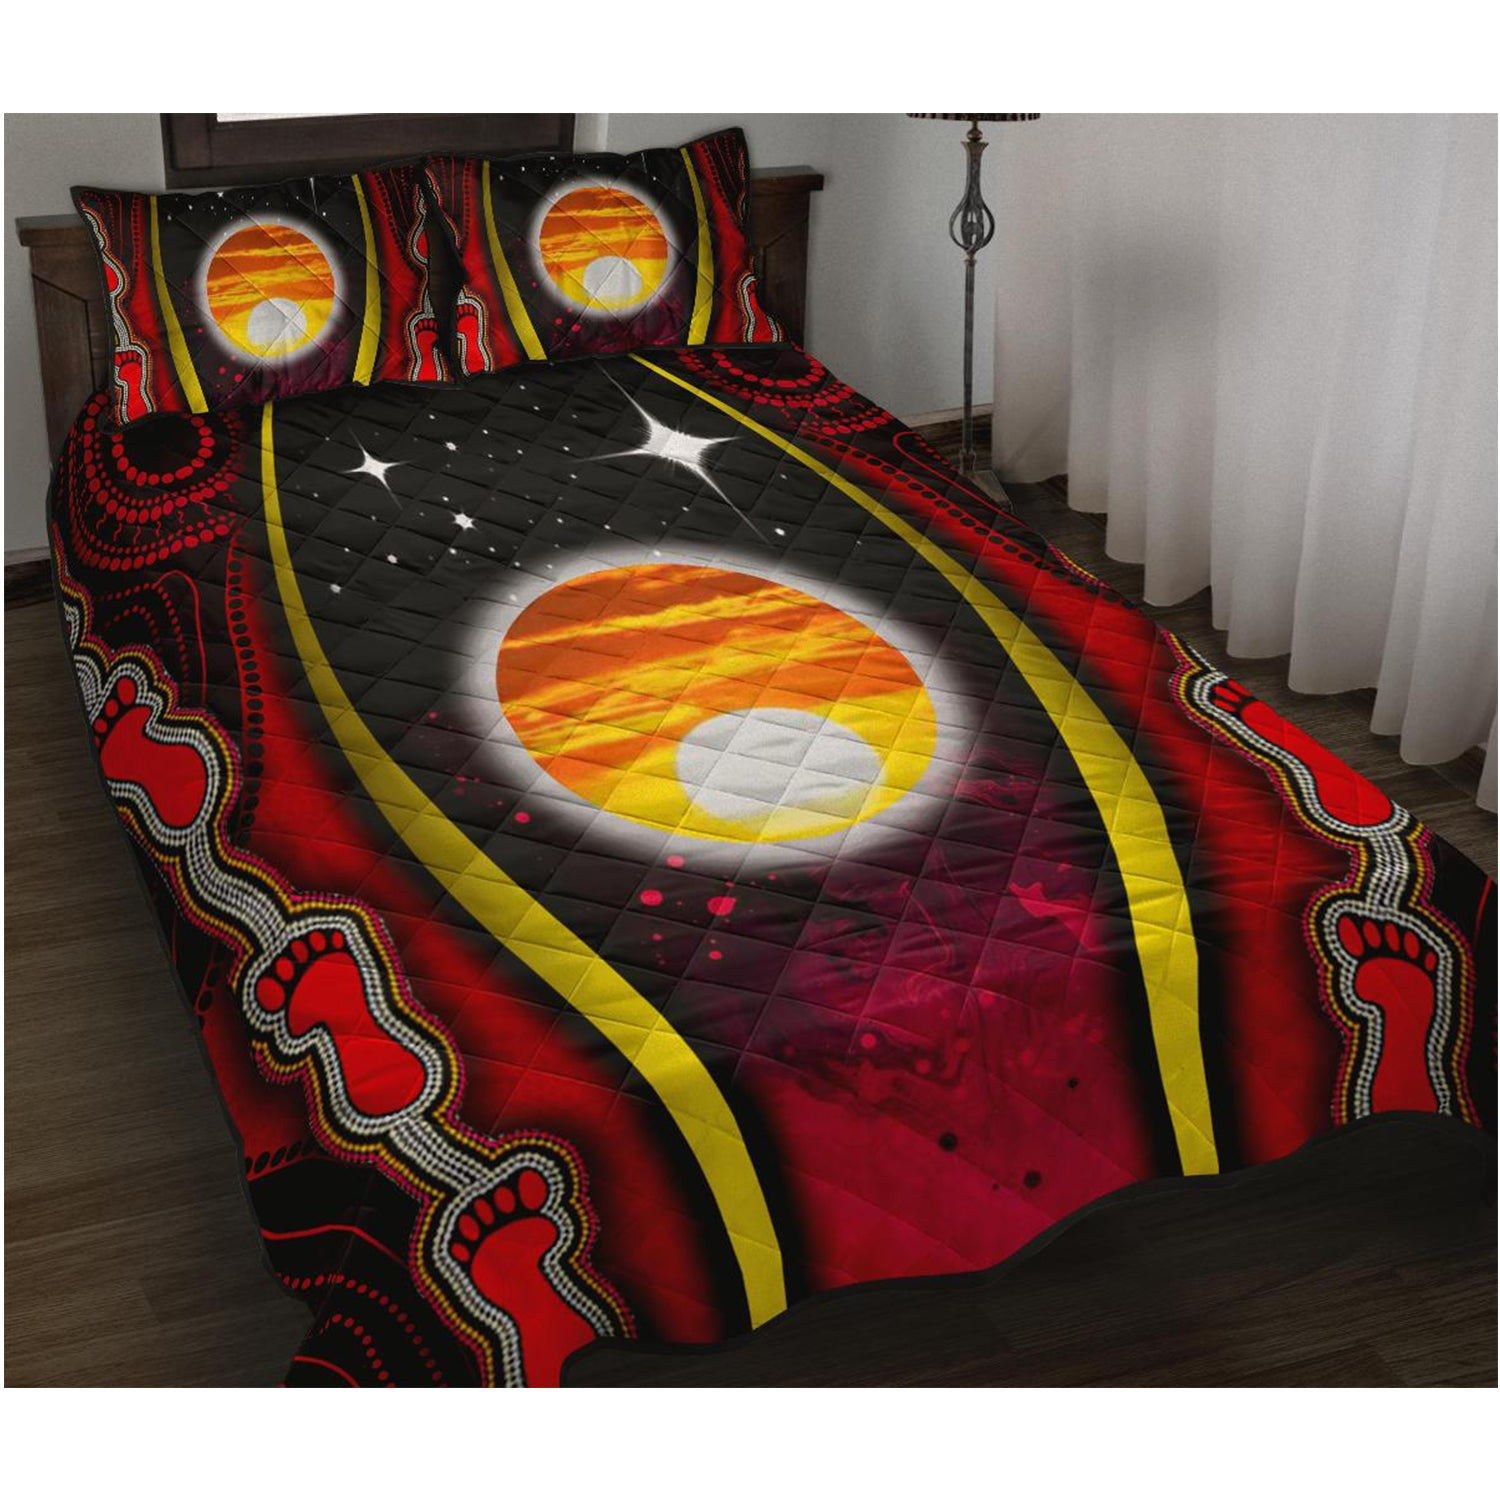 1sAustralia Quilt Bed Set - Australian Aboriginal Flags Symbolic Meaning - BN19